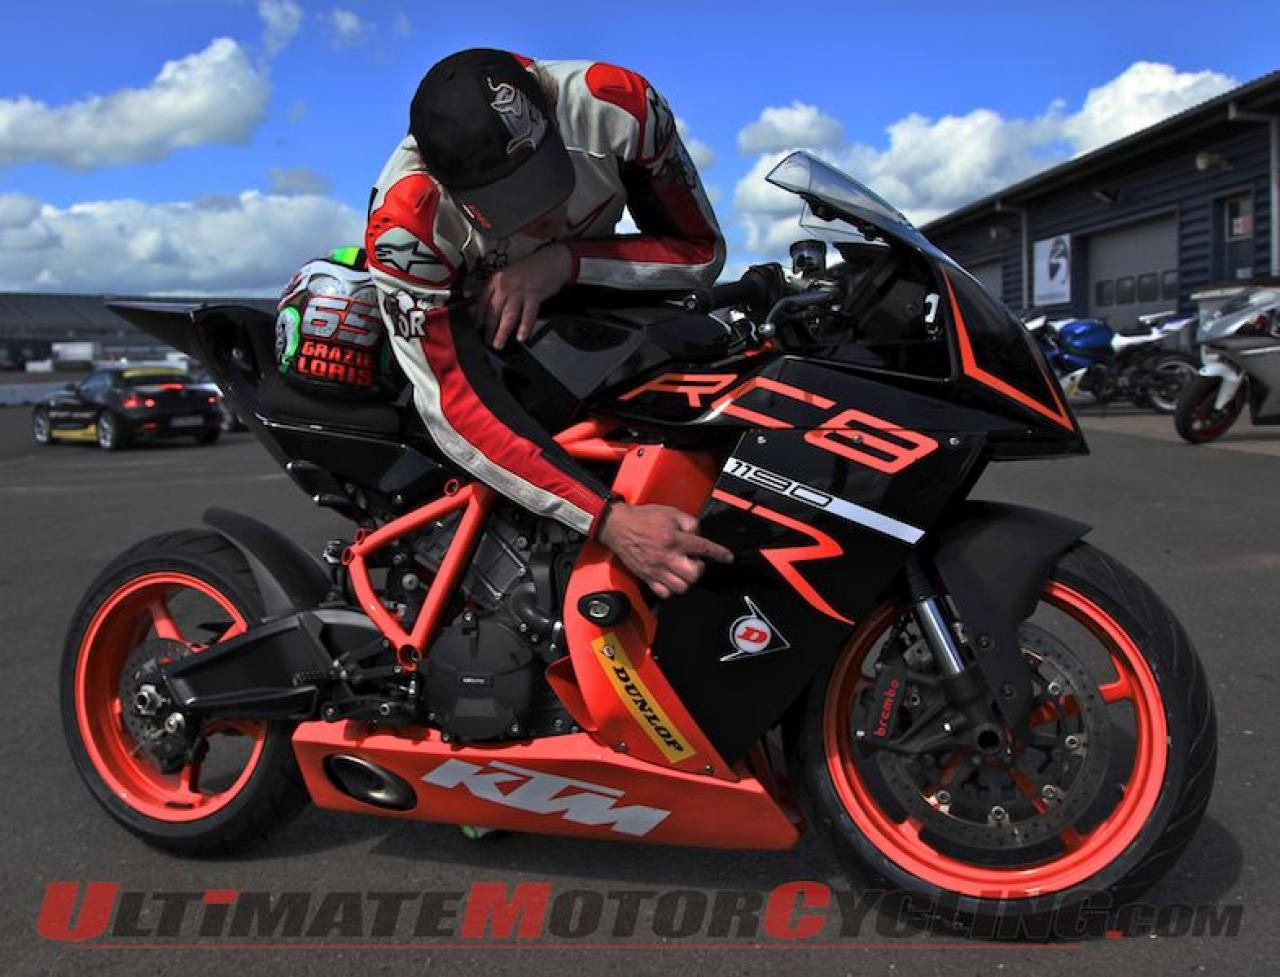 hight resolution of 2012 ktm 1190 rc8 r race specs moto zombdrive com ktm rc8 red bull wiring harness wiring diagram wiring